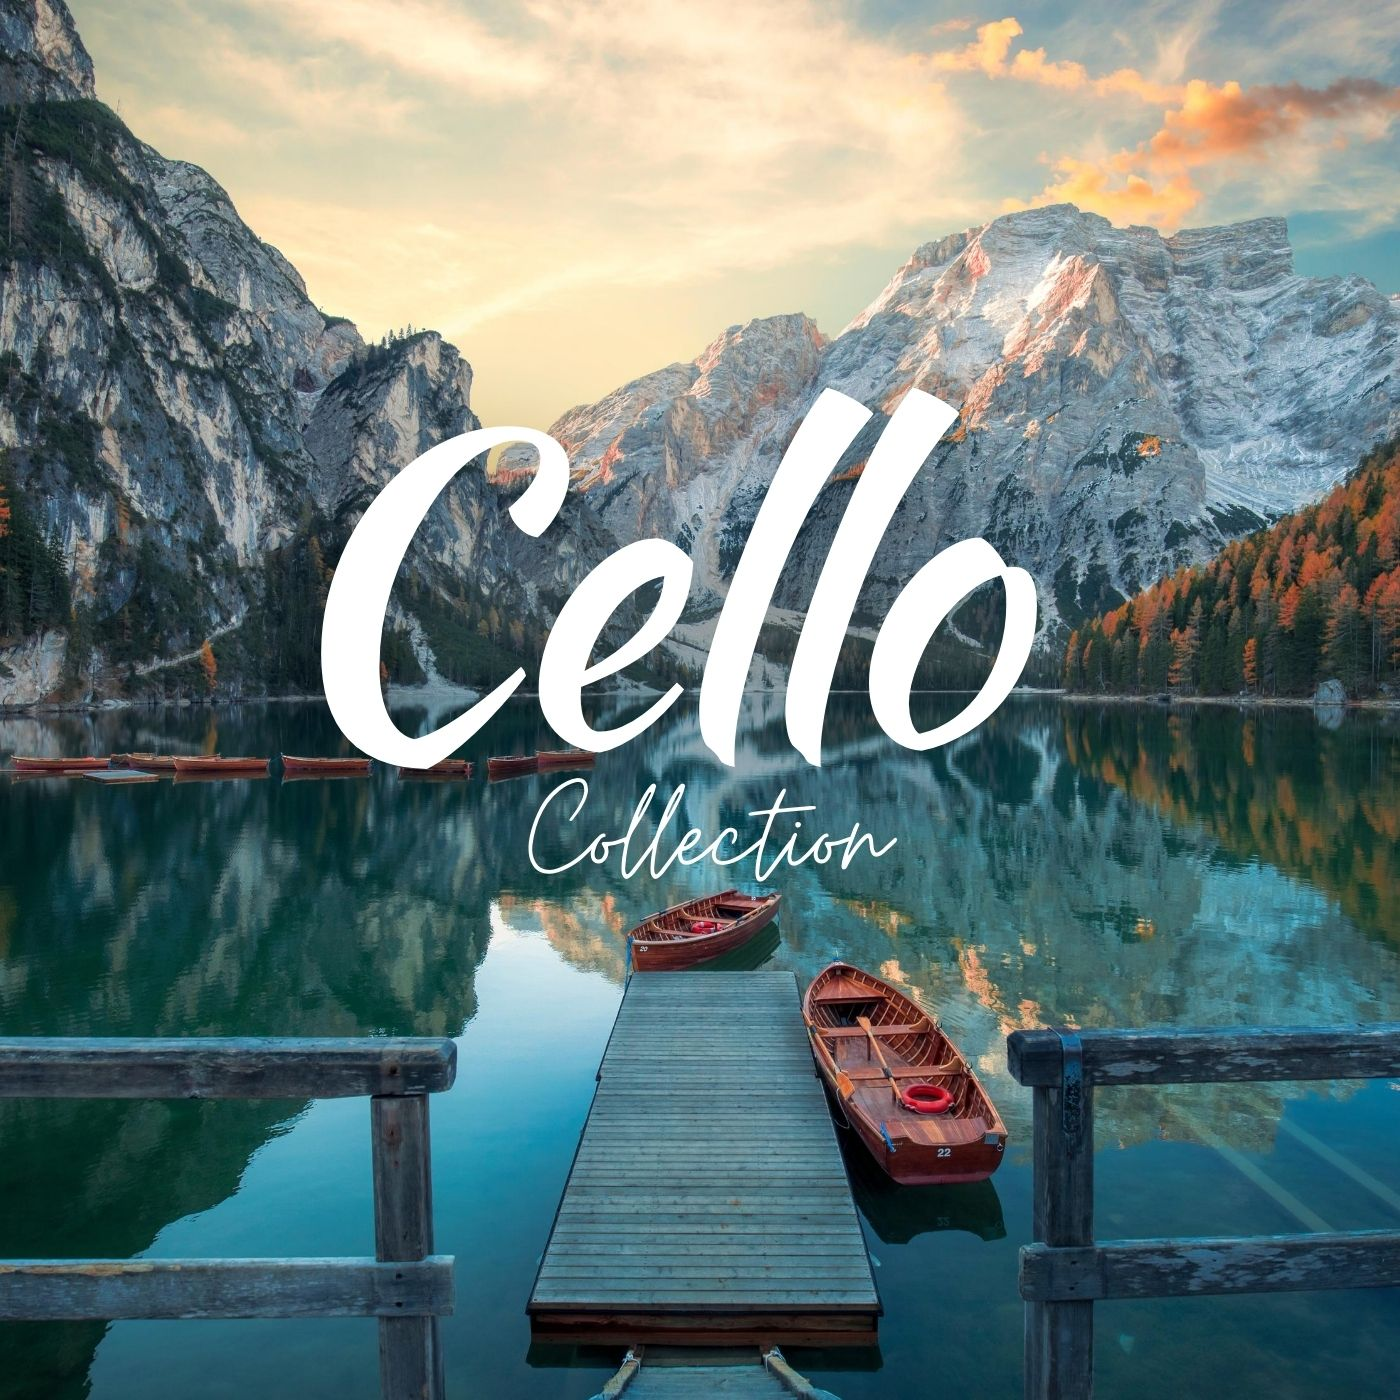 Cello Collection